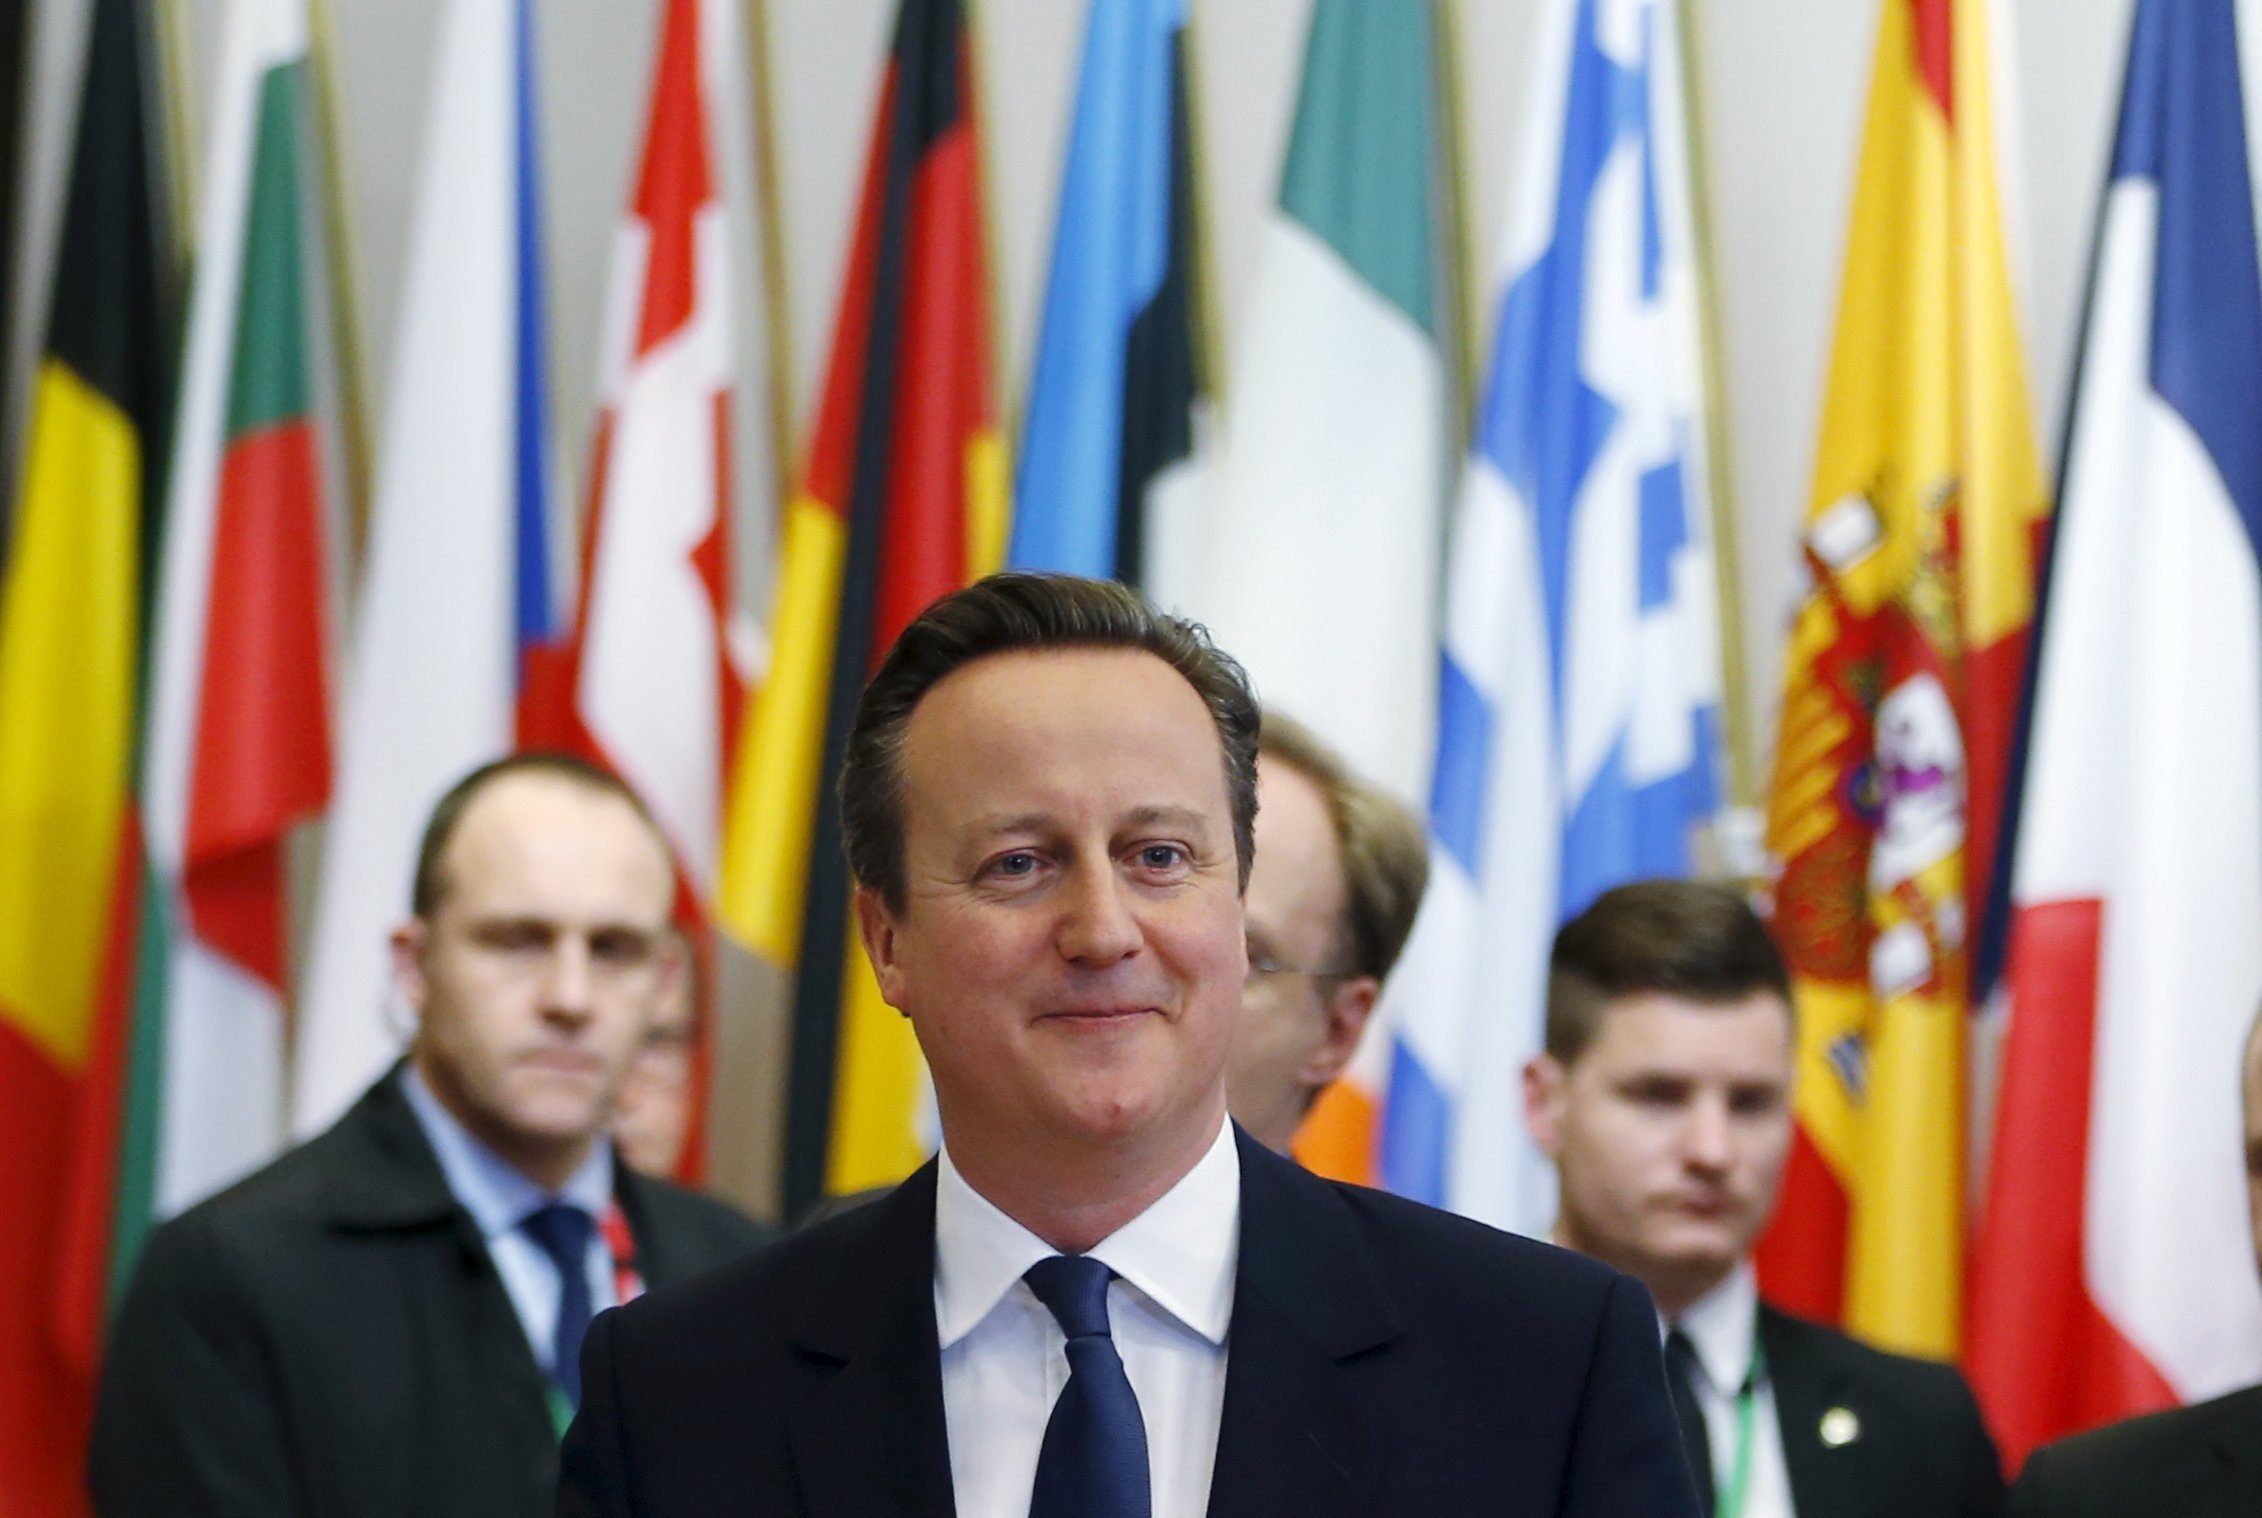 Britain's Prime Minister David Cameron leaves a European Union leaders summit in Brussels, Feb. 19, 2016.